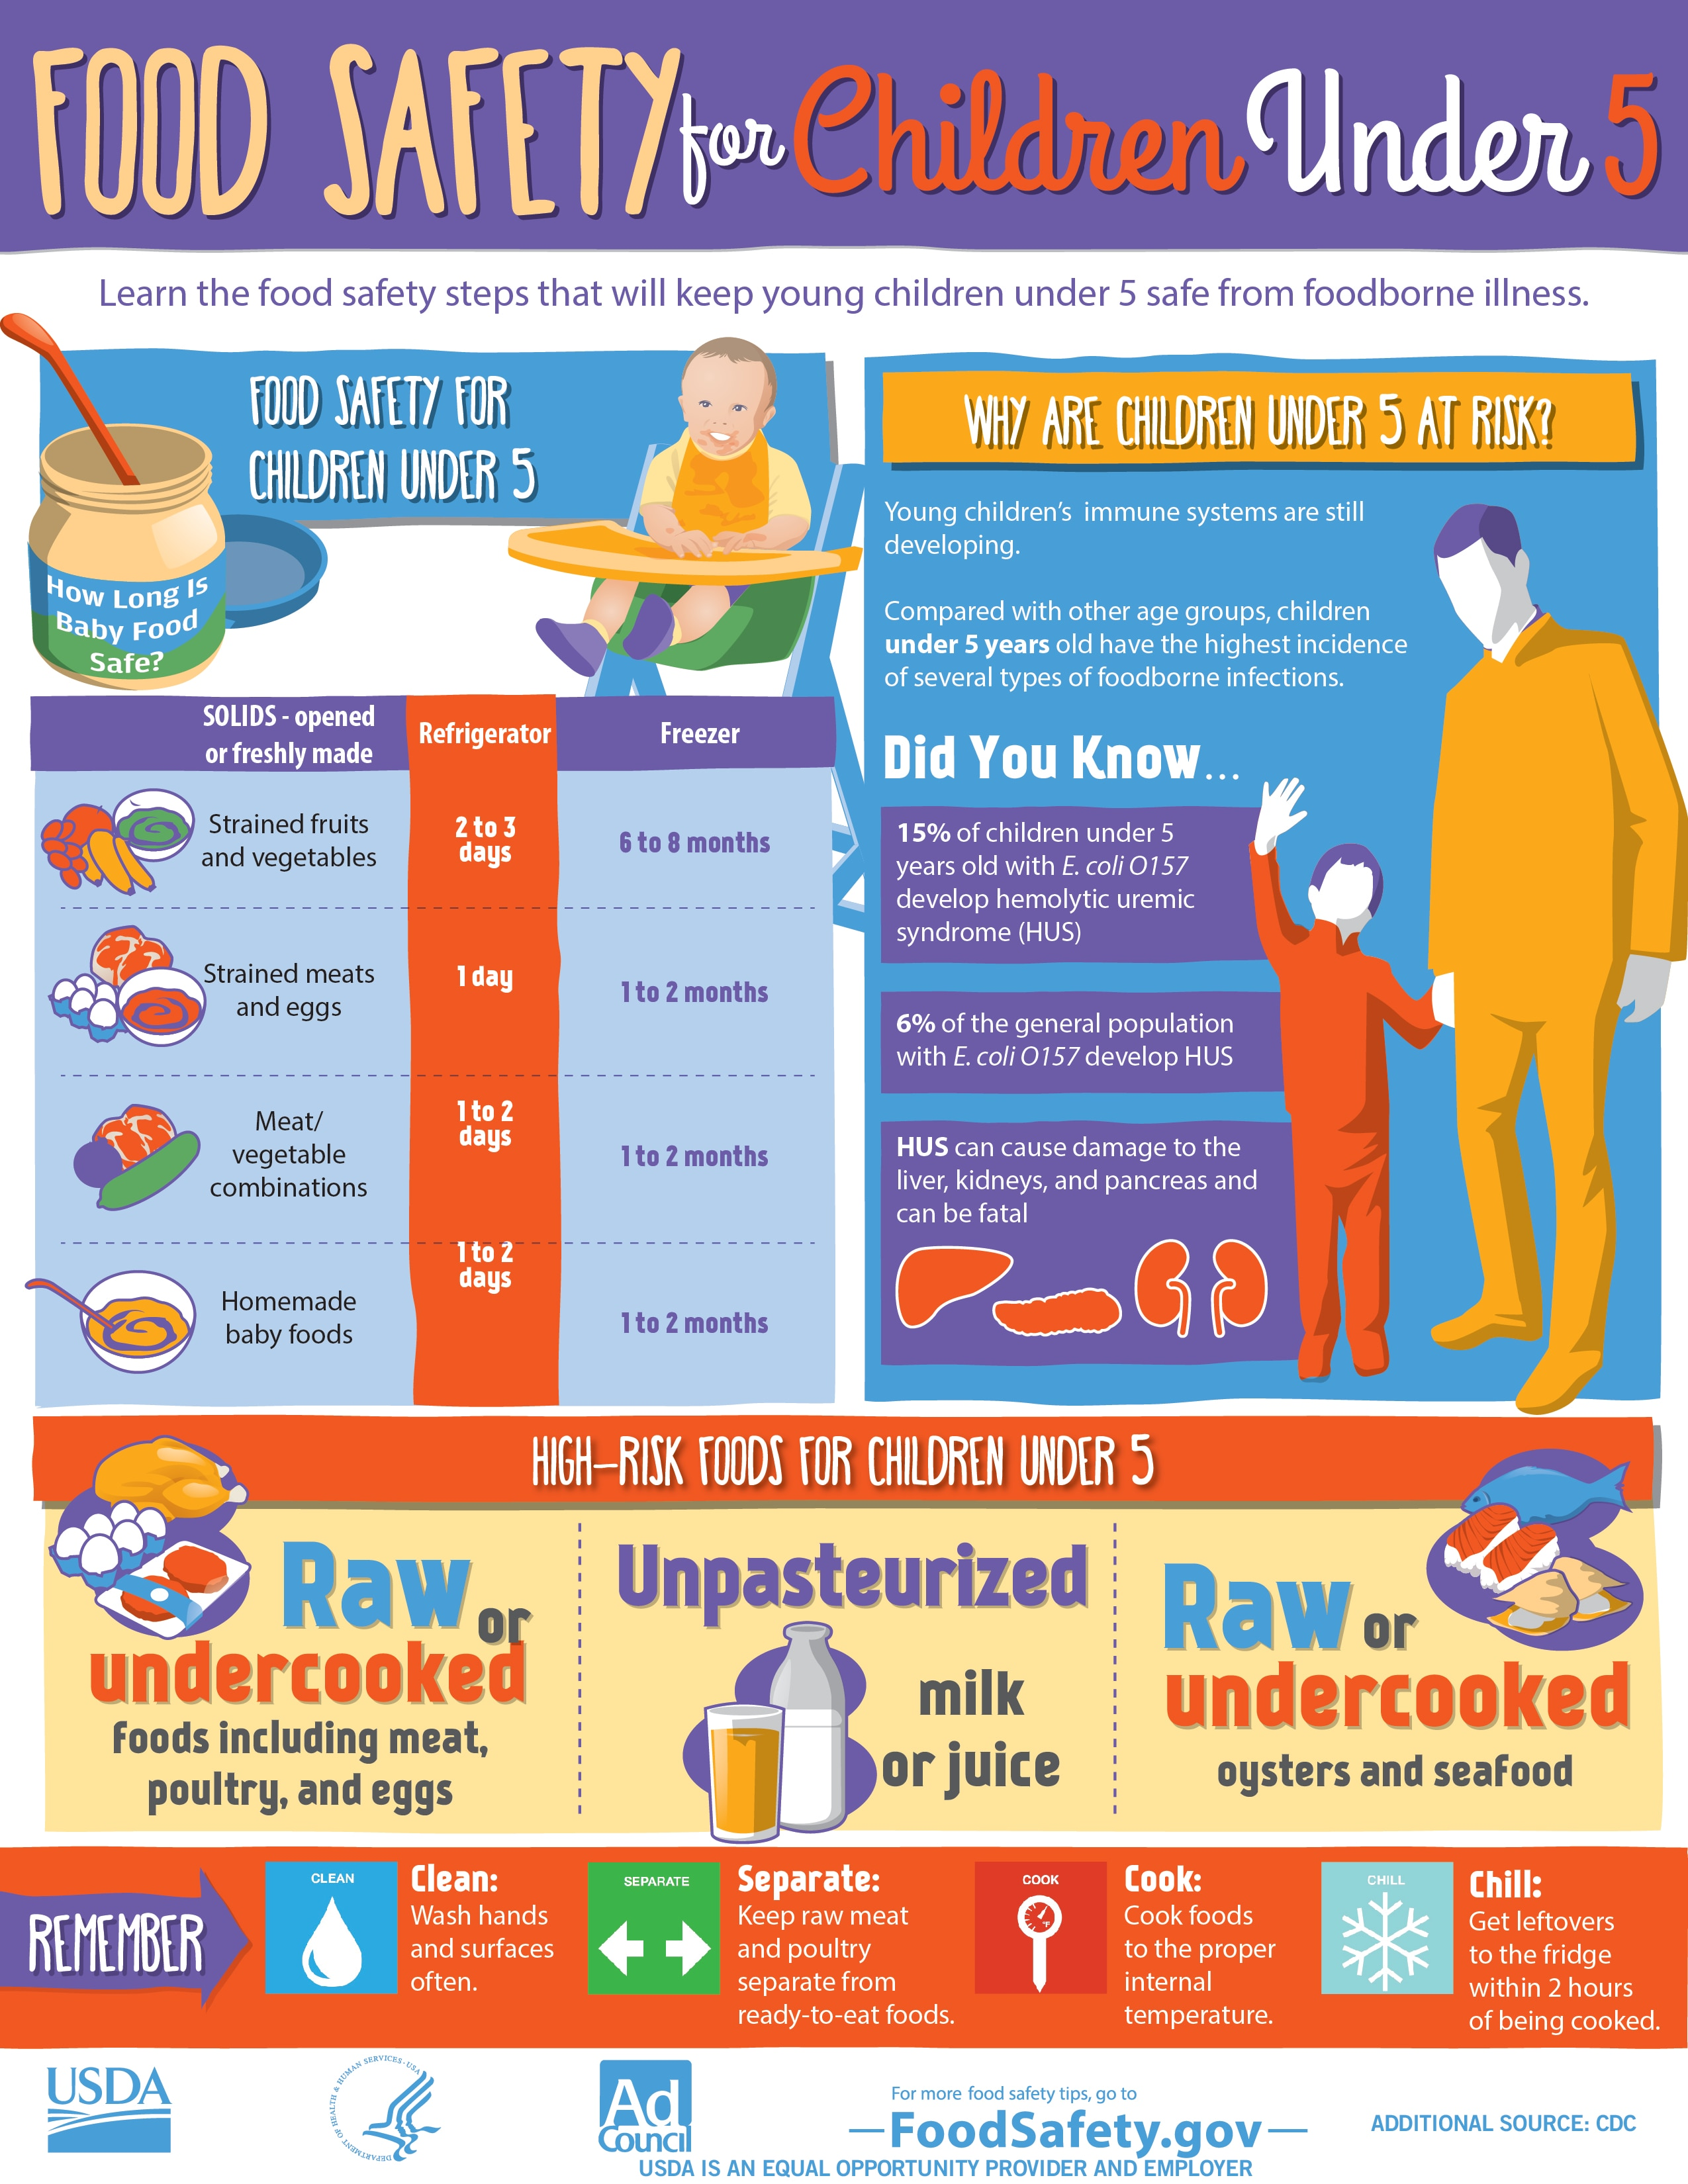 Infographic from FoodSafety.gov with food safety steps that will protect children under 5 from foodborne illness.